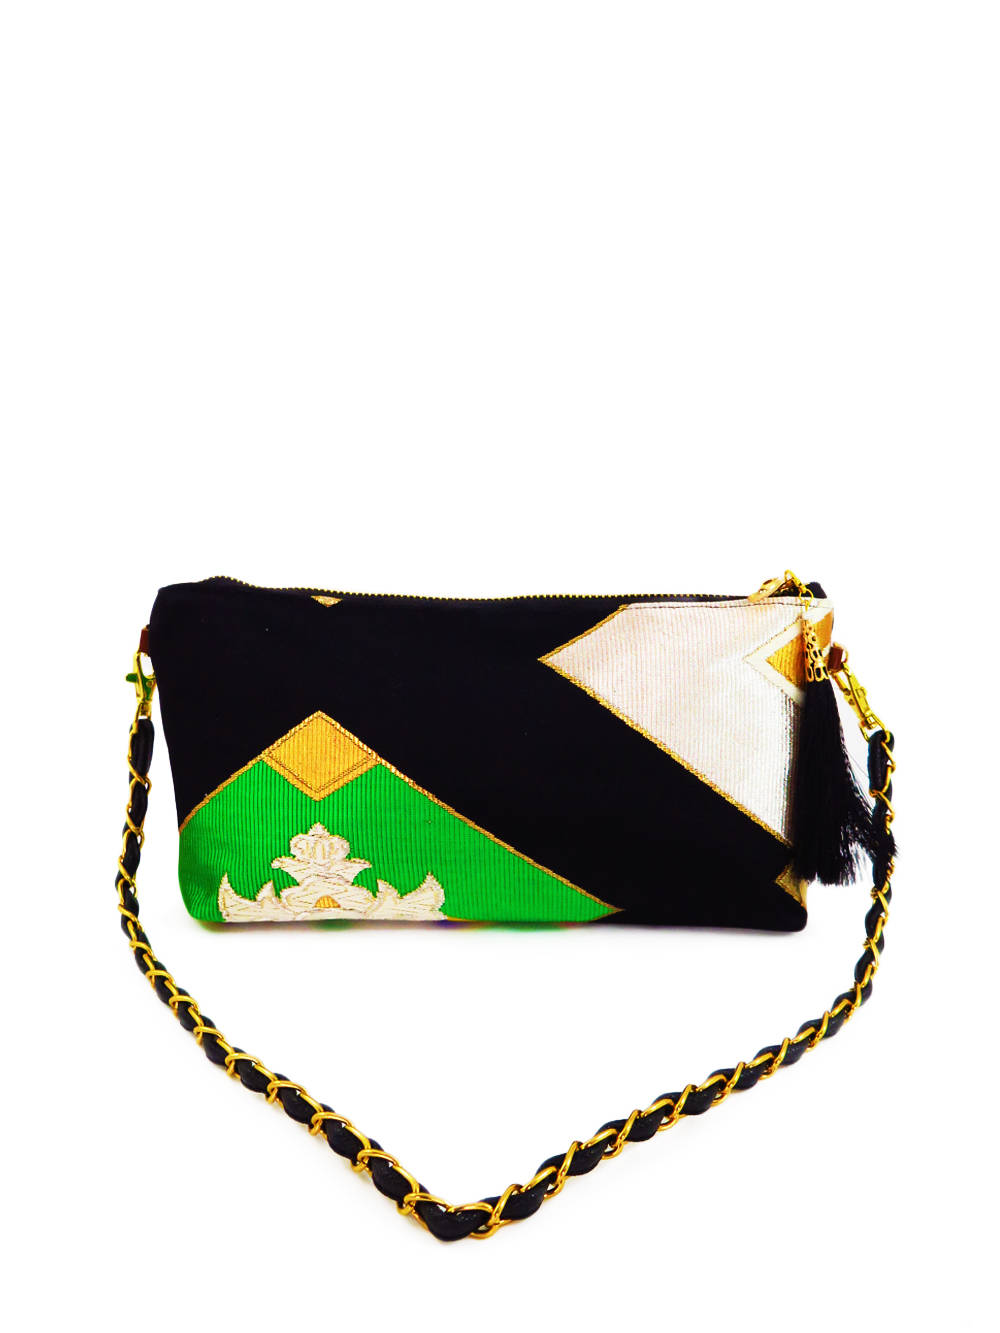 "Japanese Kimono Obi Fabric ""Chrysanthemum Black""_ Evening Shoulder Bag_ Removable Chain Style_Party Bag"